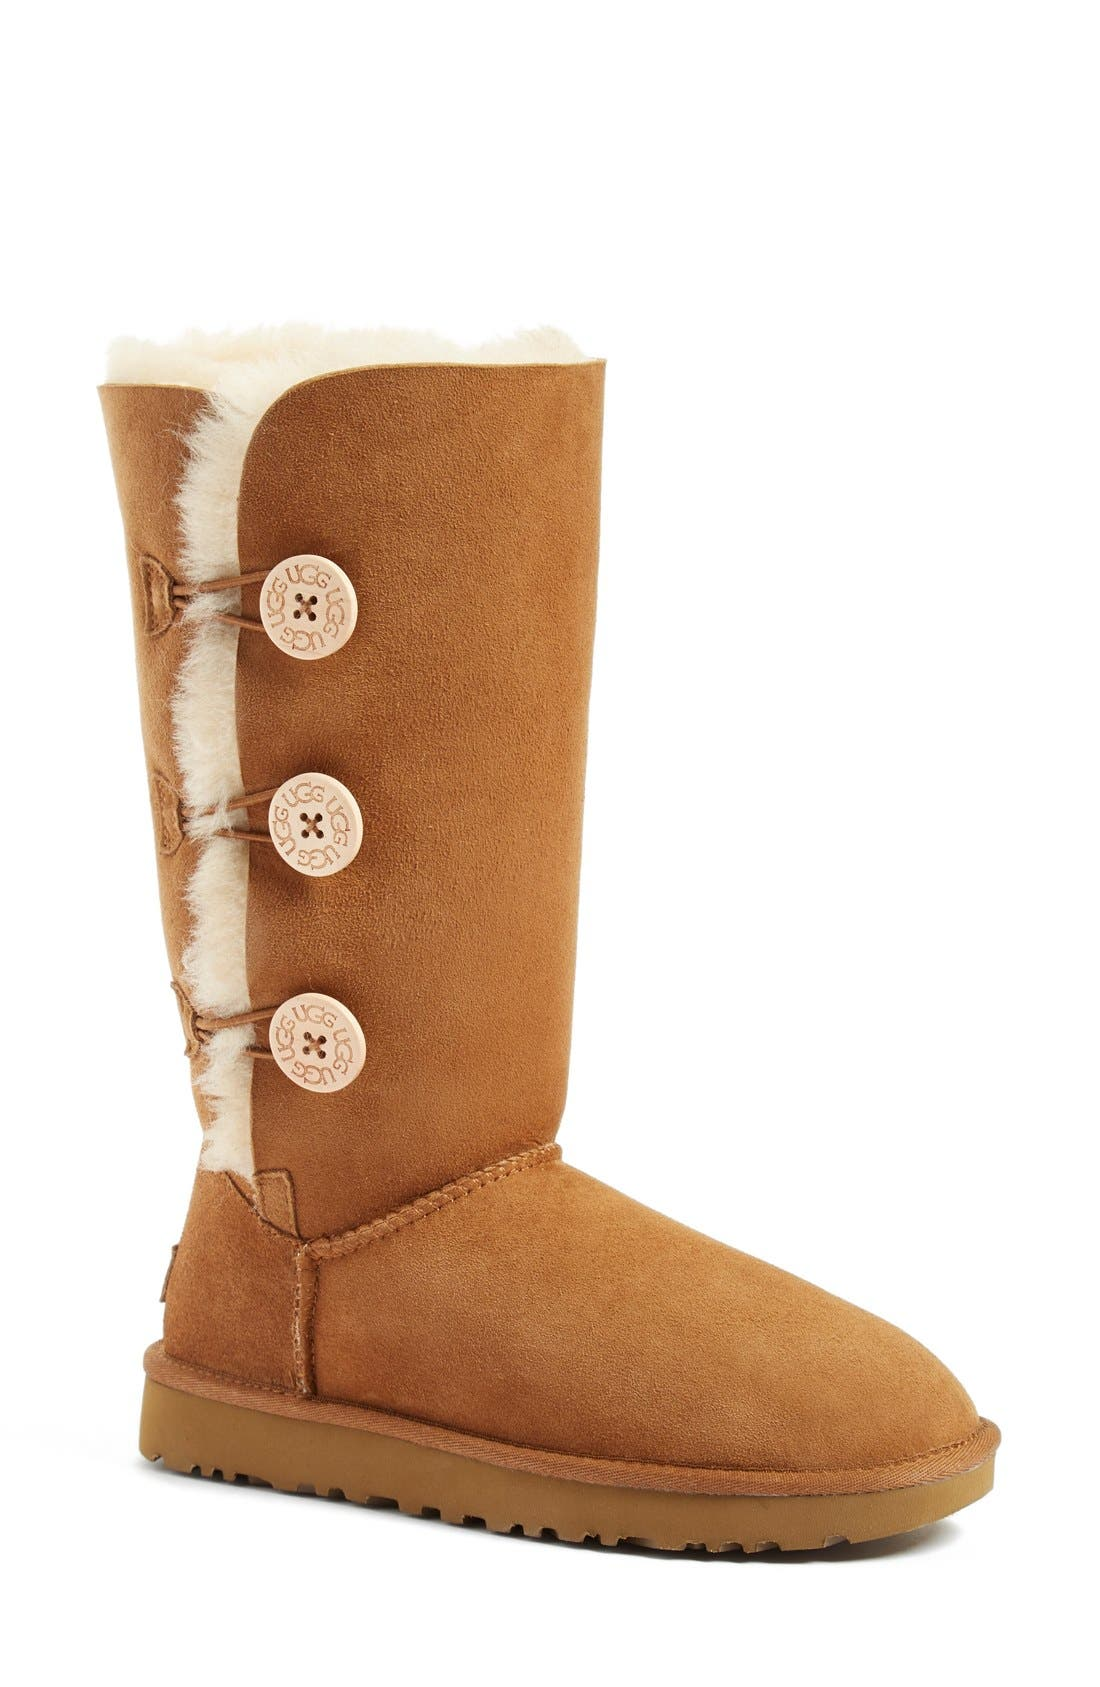 Alternate Image 1 Selected - UGG® 'Bailey Button Triplet II' Boot (Women)